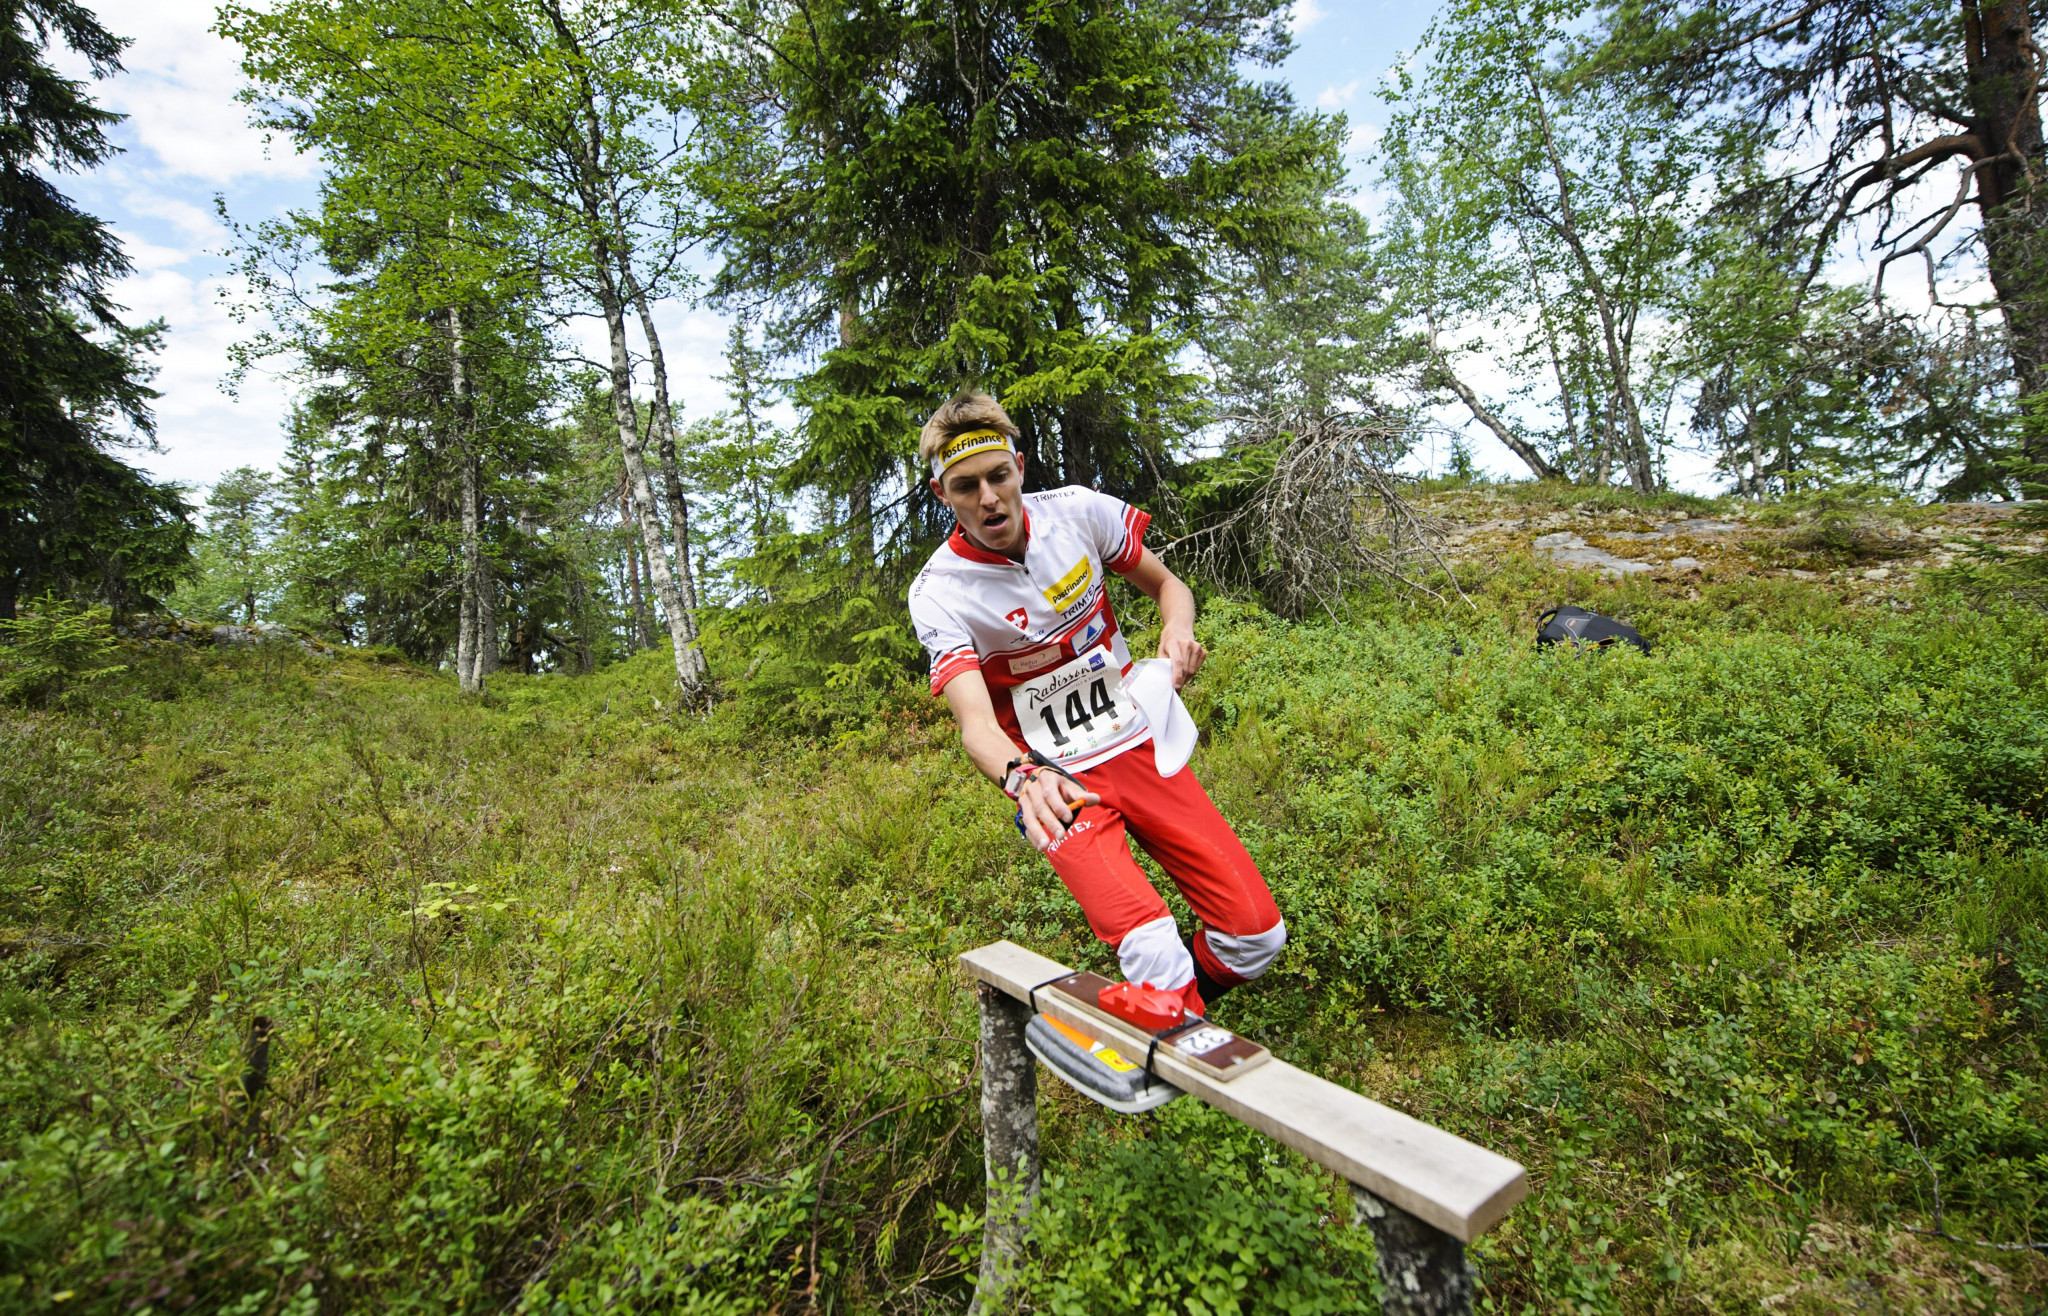 Hubman and Kyburz share gold at European Orienteering Championships